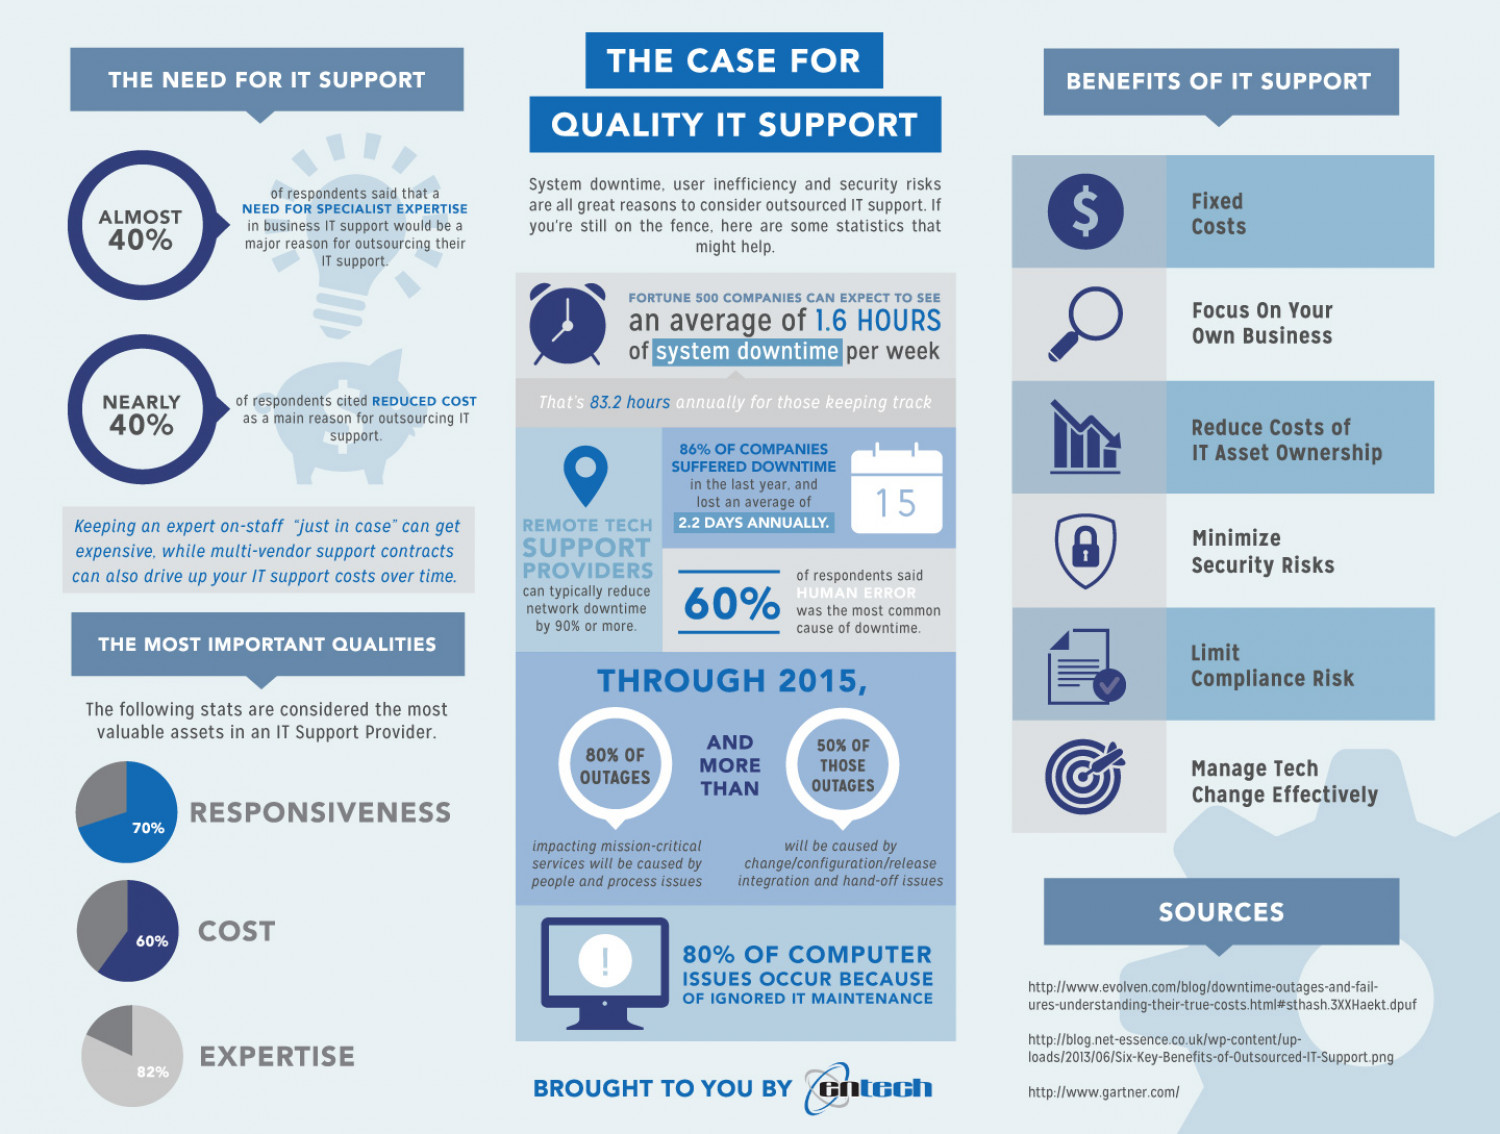 The Case for Quality IT Support Infographic